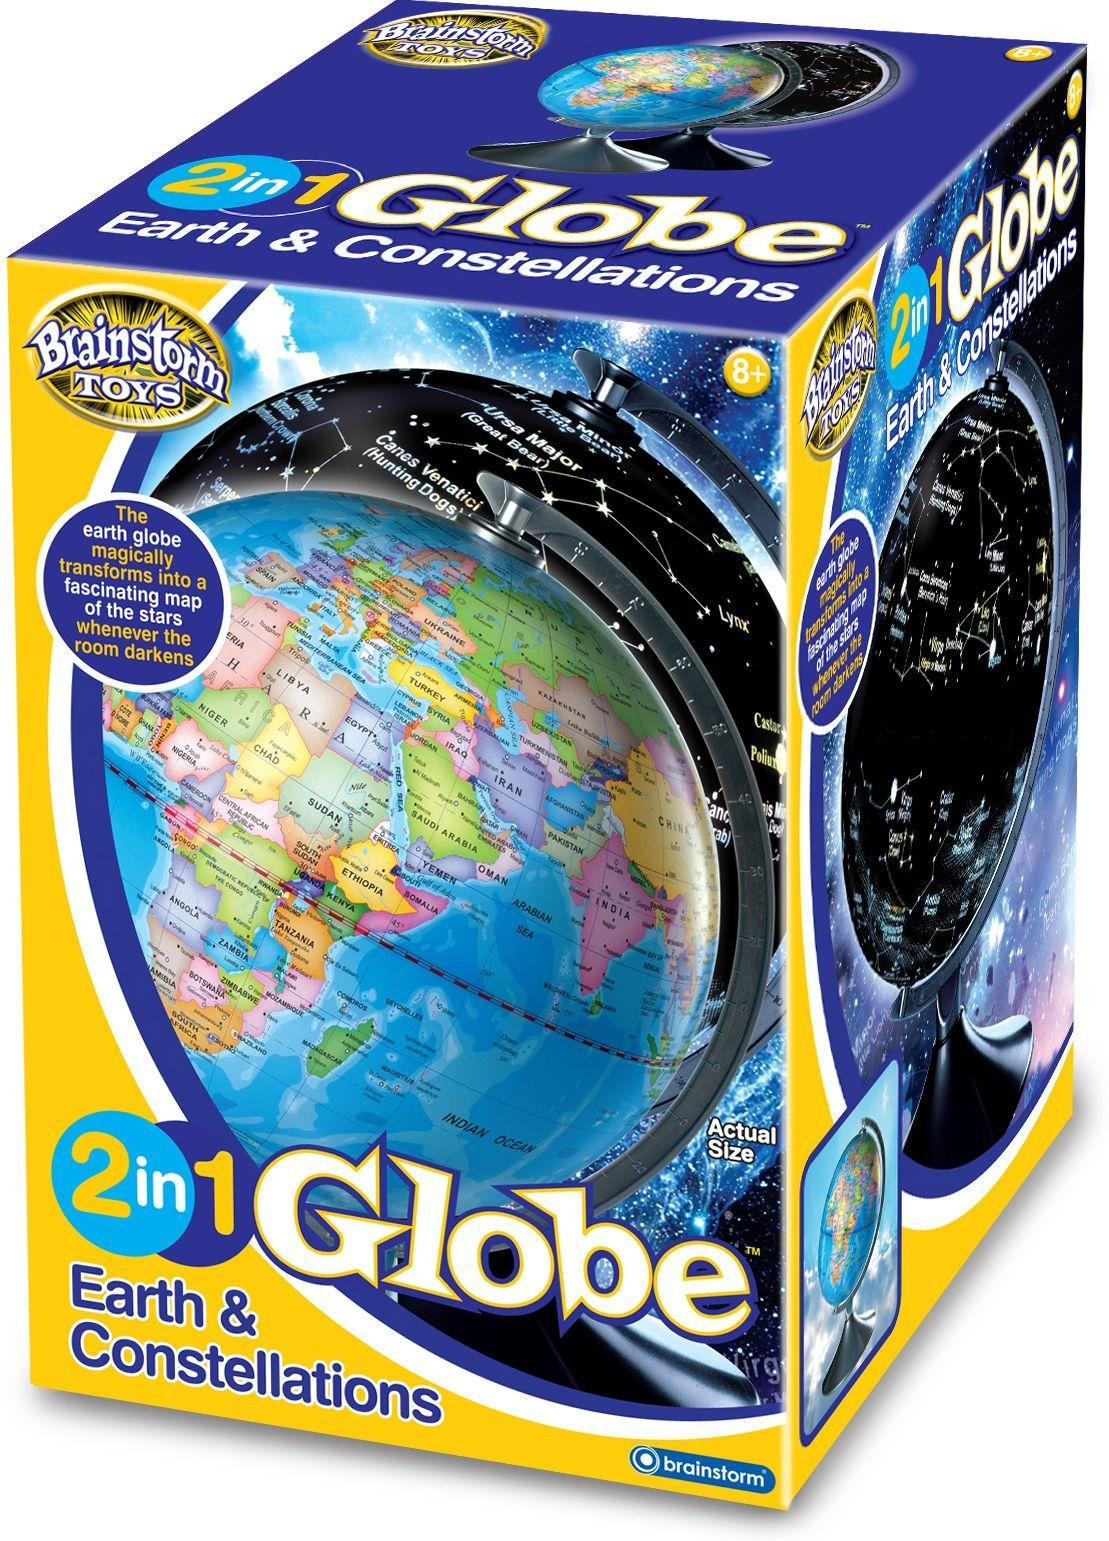 Image of Brainstorm Toys 2 in 1 Globe Earth and Constellations.